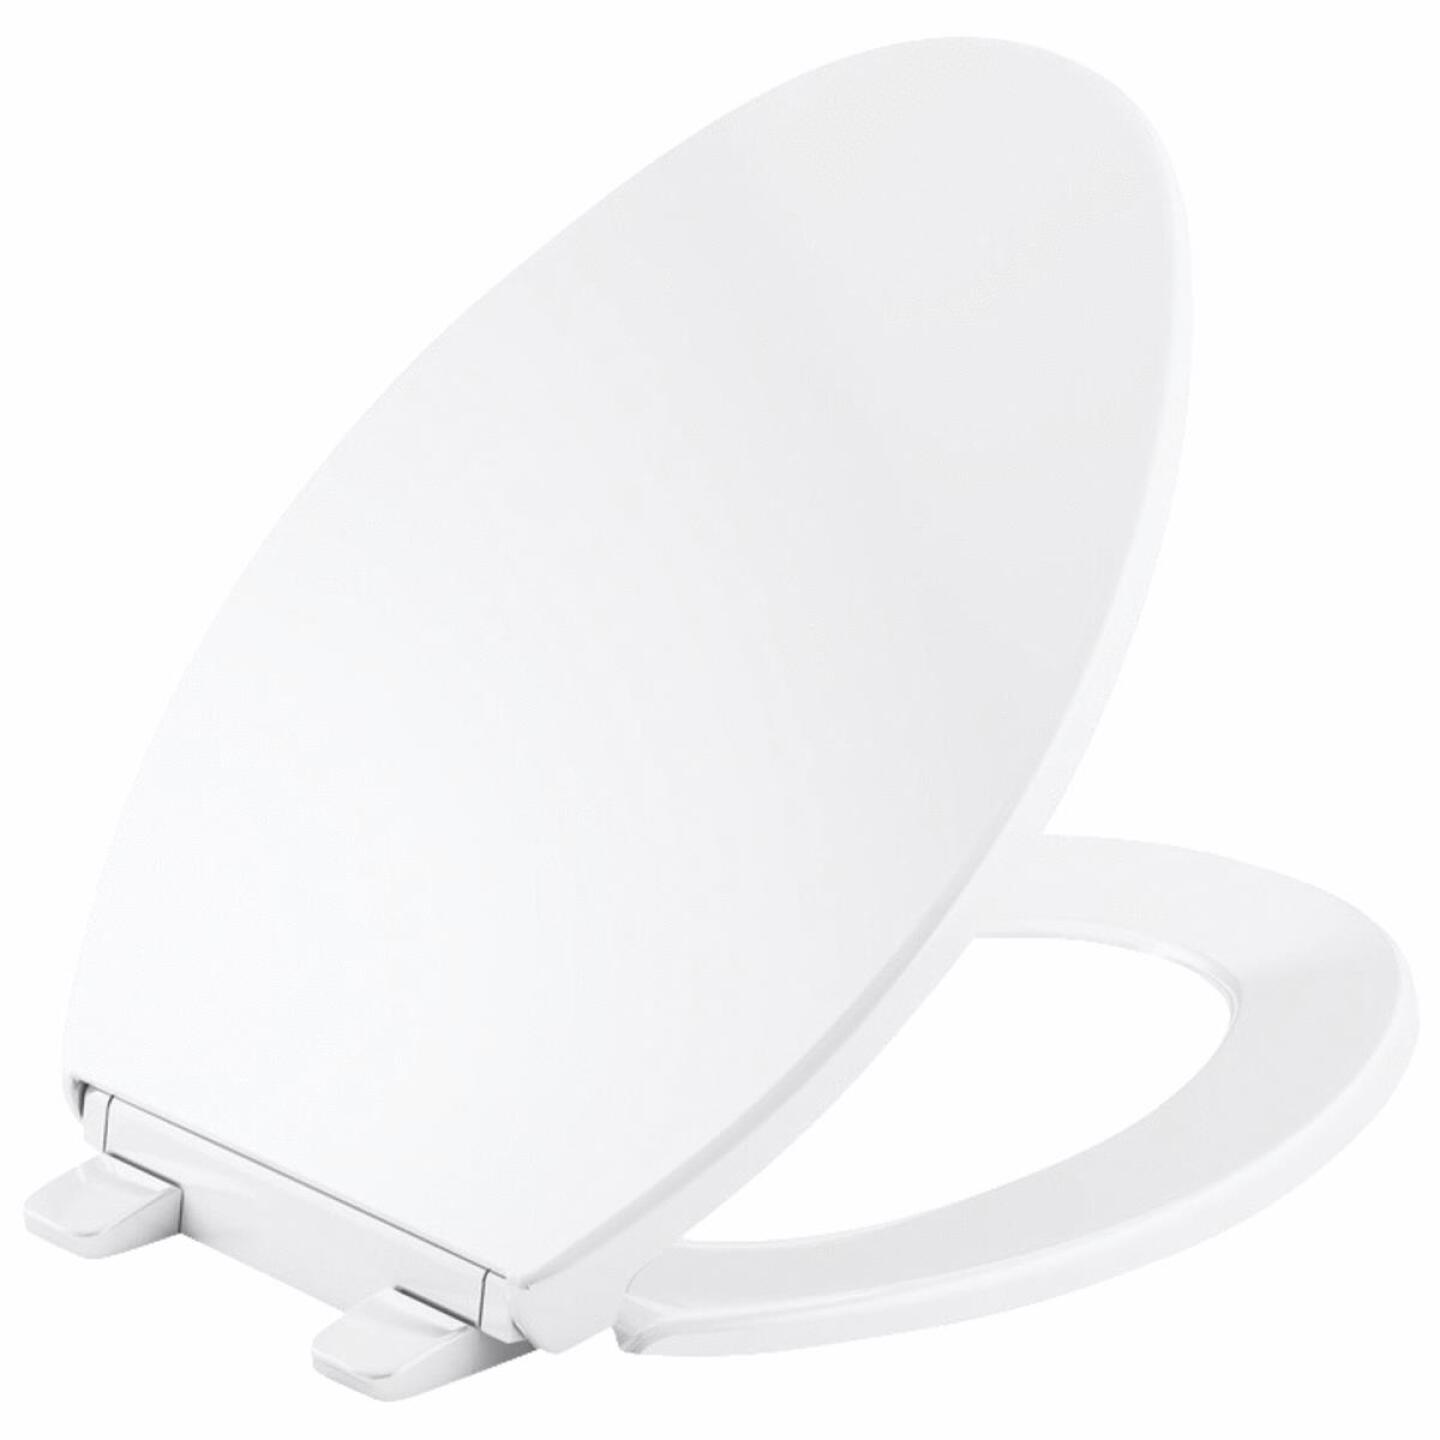 Kohler Brevia Quick-Release Round Closed Front White Plastic Toilet Seat Image 1